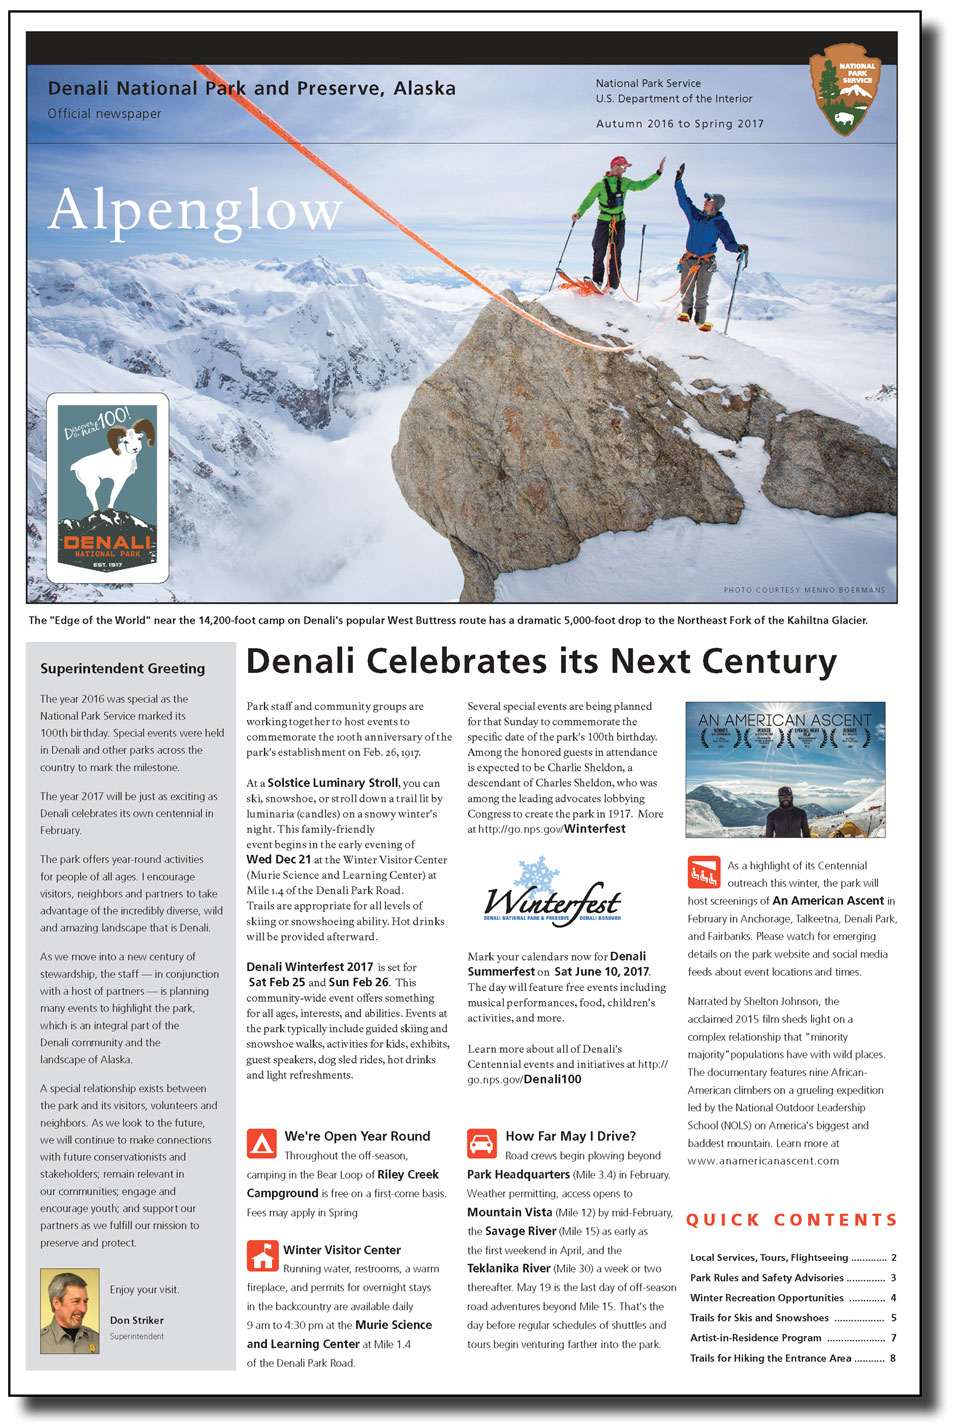 Front page of park newspaper with image of two people mountain climbing